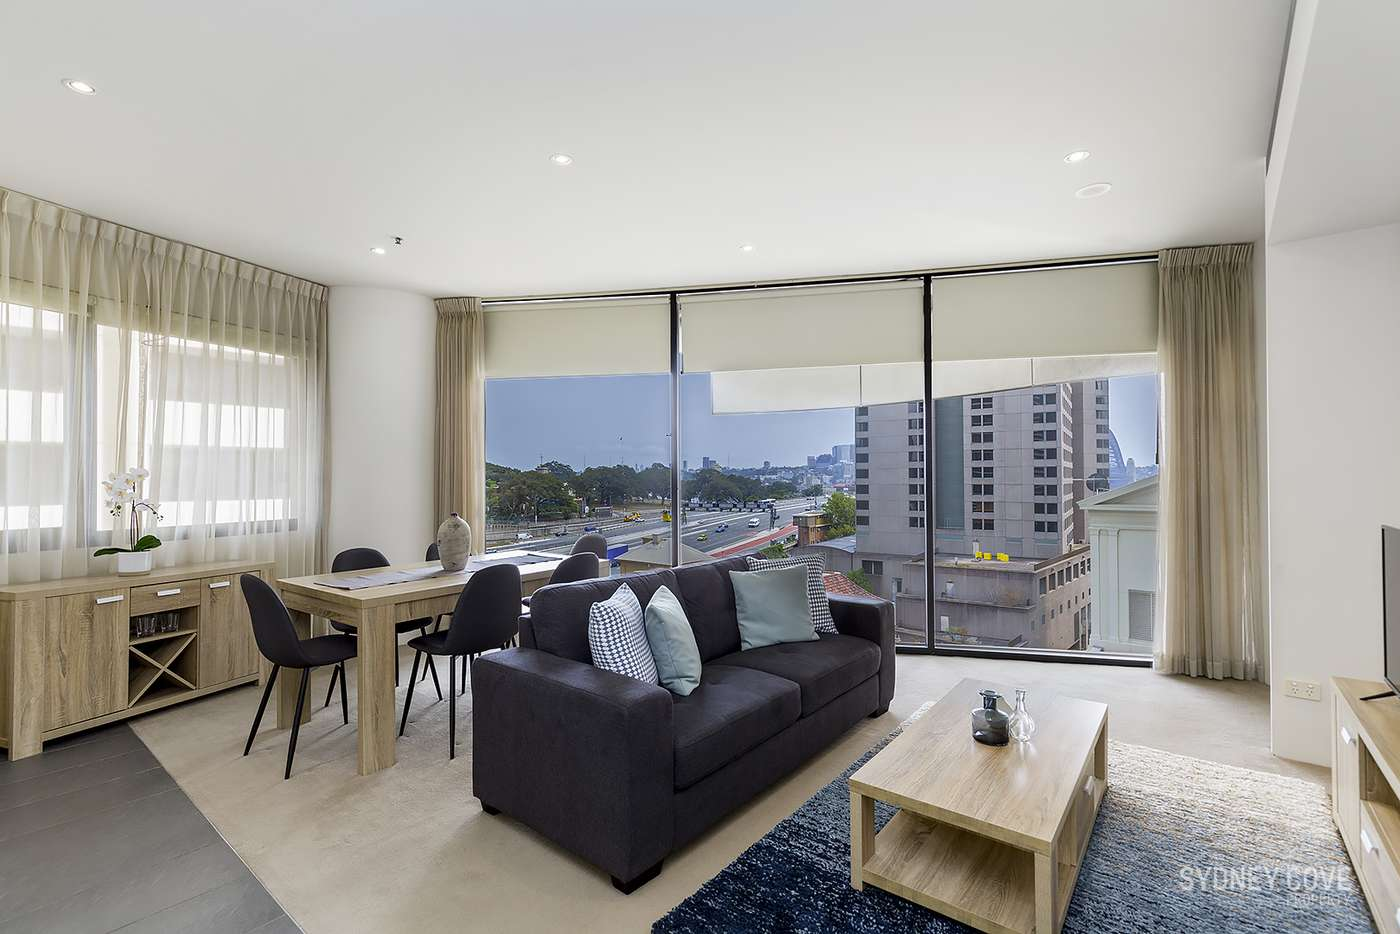 Main view of Homely apartment listing, 129 Harrington St, Sydney NSW 2000